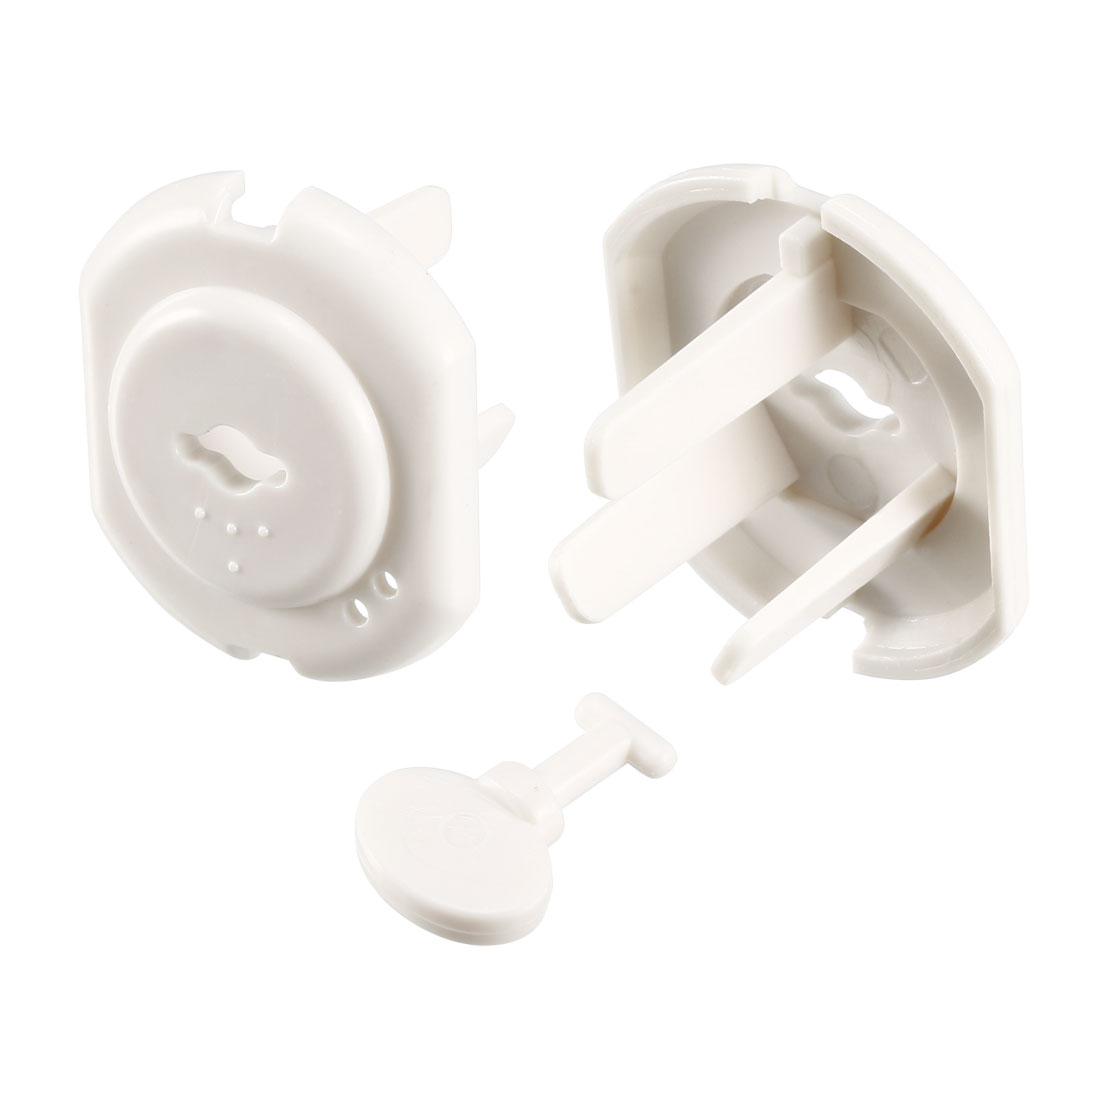 AU Standard 3 Prong Power Socket Covers Durable Electric Protector Proofing 2Pcs